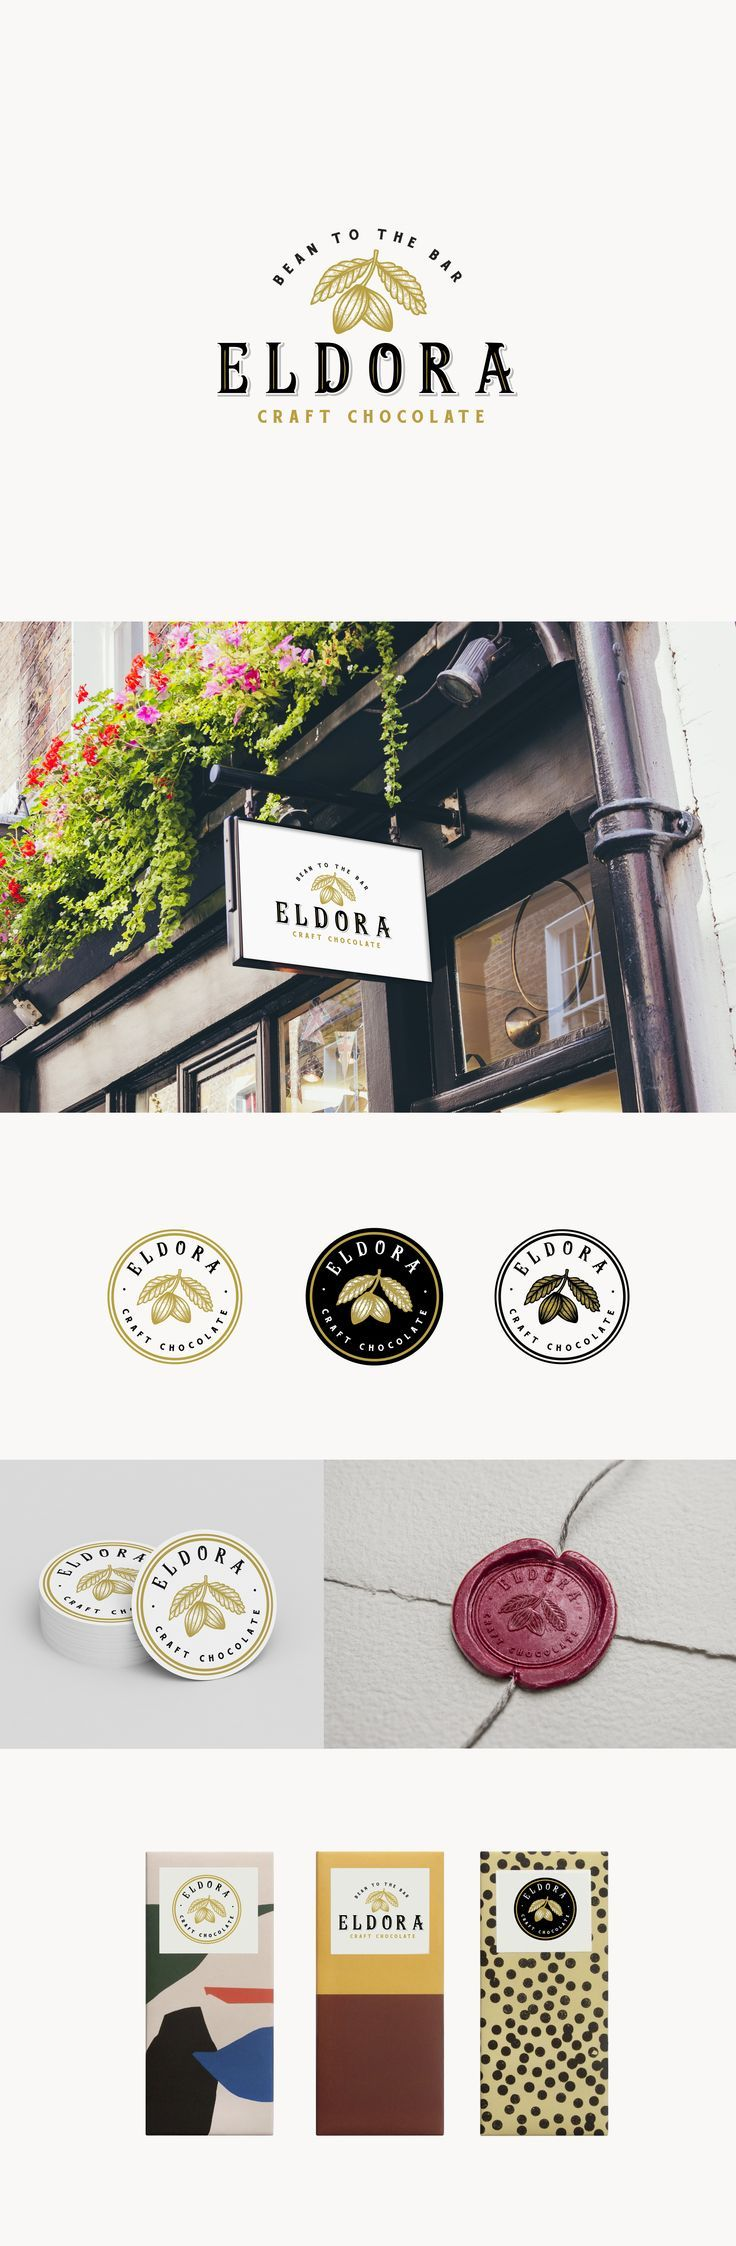 Check out this Logo & brand identity pack from the 99designs community.